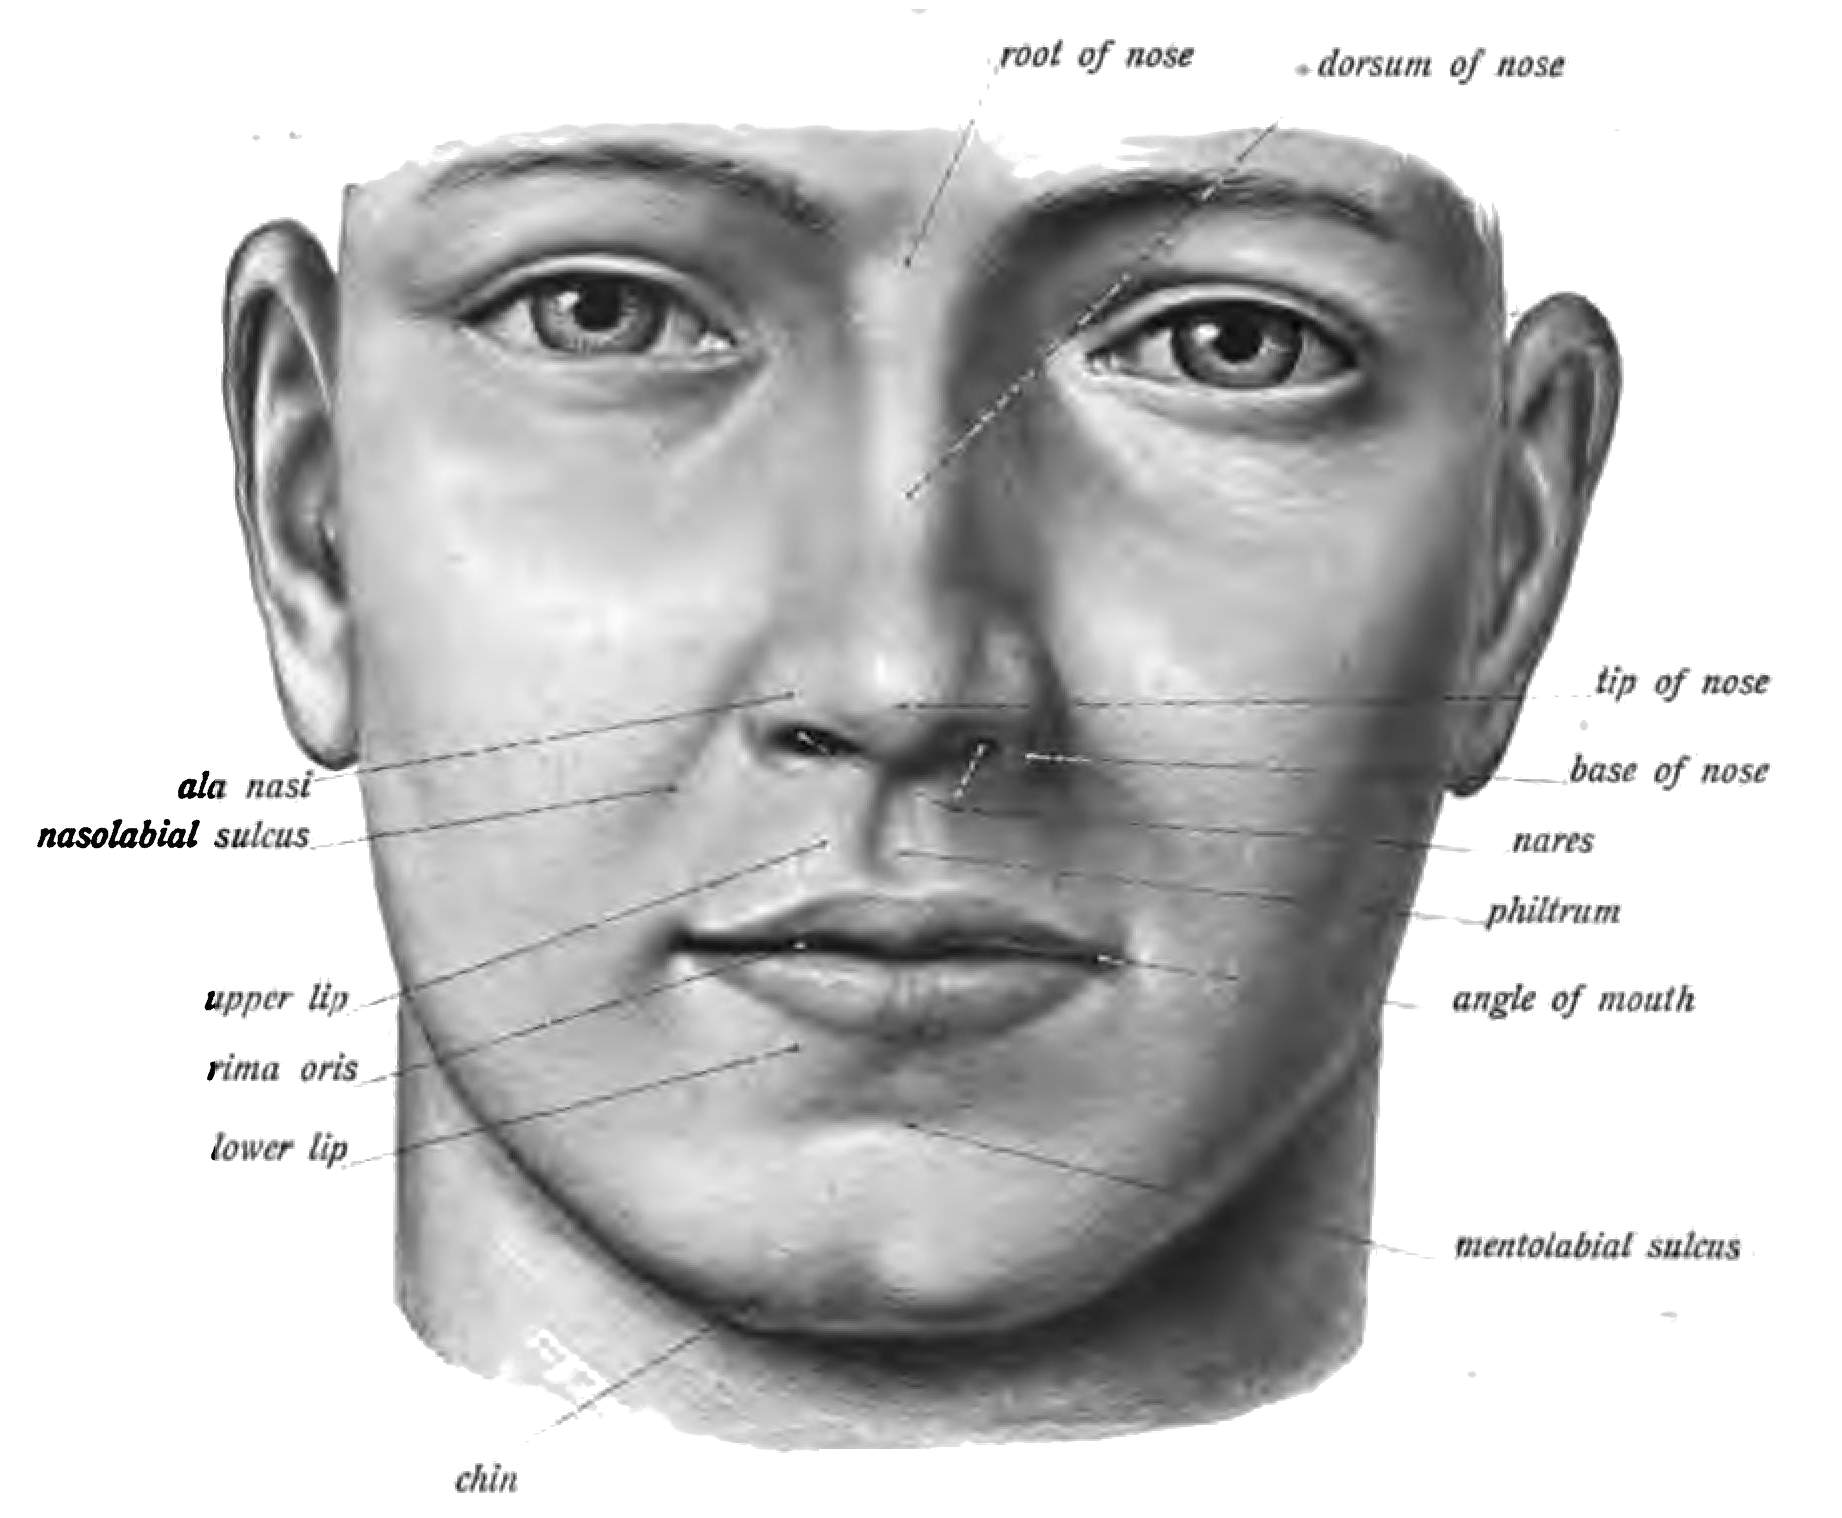 Philtrum - Wikipedia